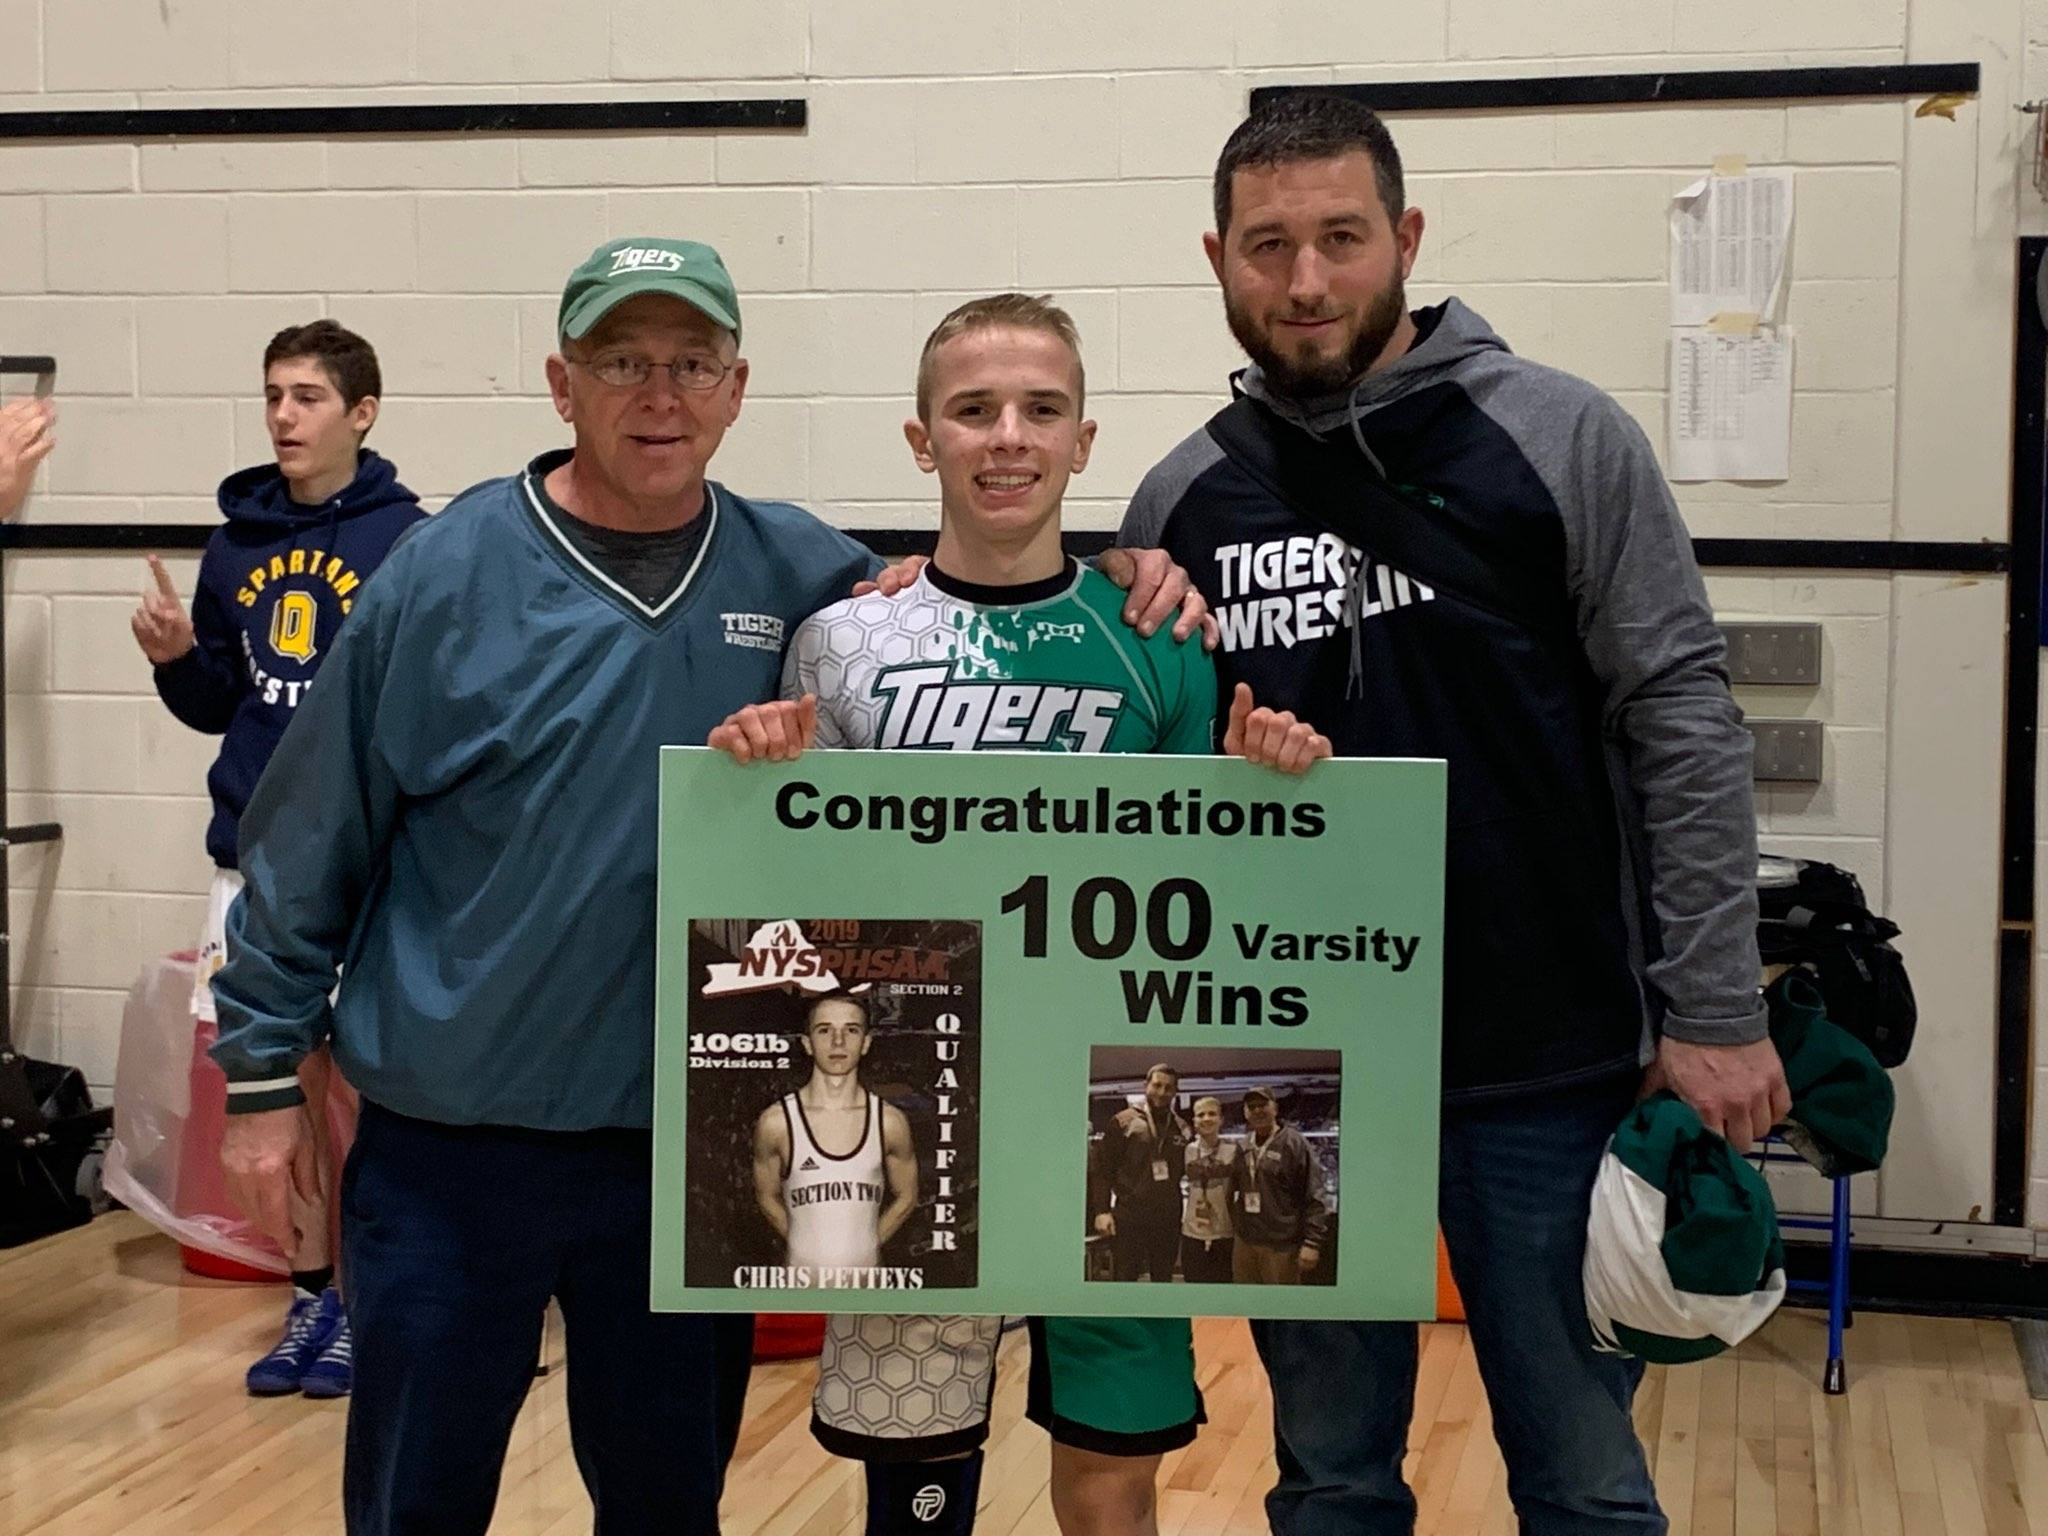 HFHS wrestler Chris holds a poster commemorating his 100th win; he's flanked by his two coaches